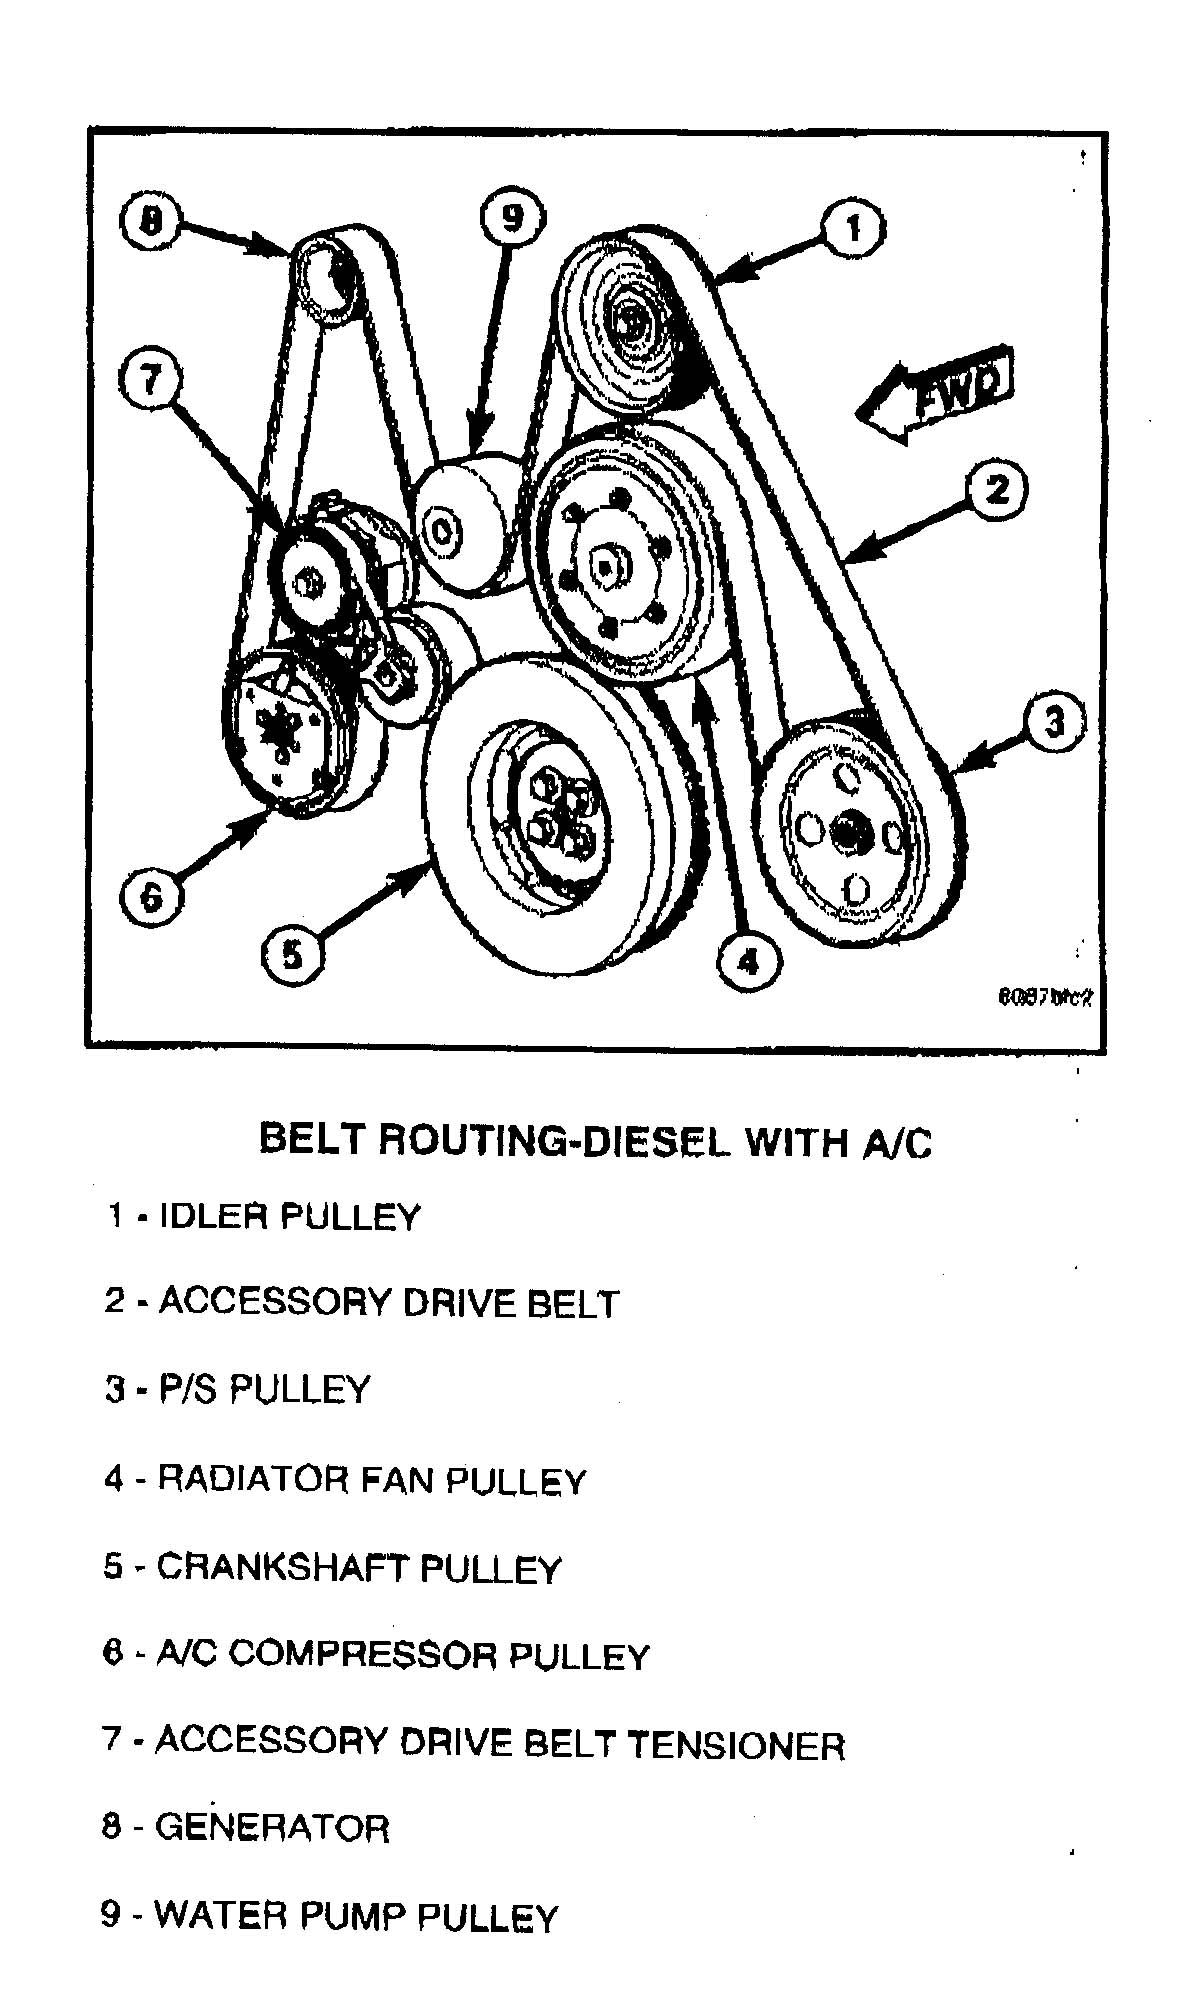 6 7 belt routing diagram dodge diesel diesel truck resource 2010 dodge journey belt routing diagram [ 1197 x 2013 Pixel ]